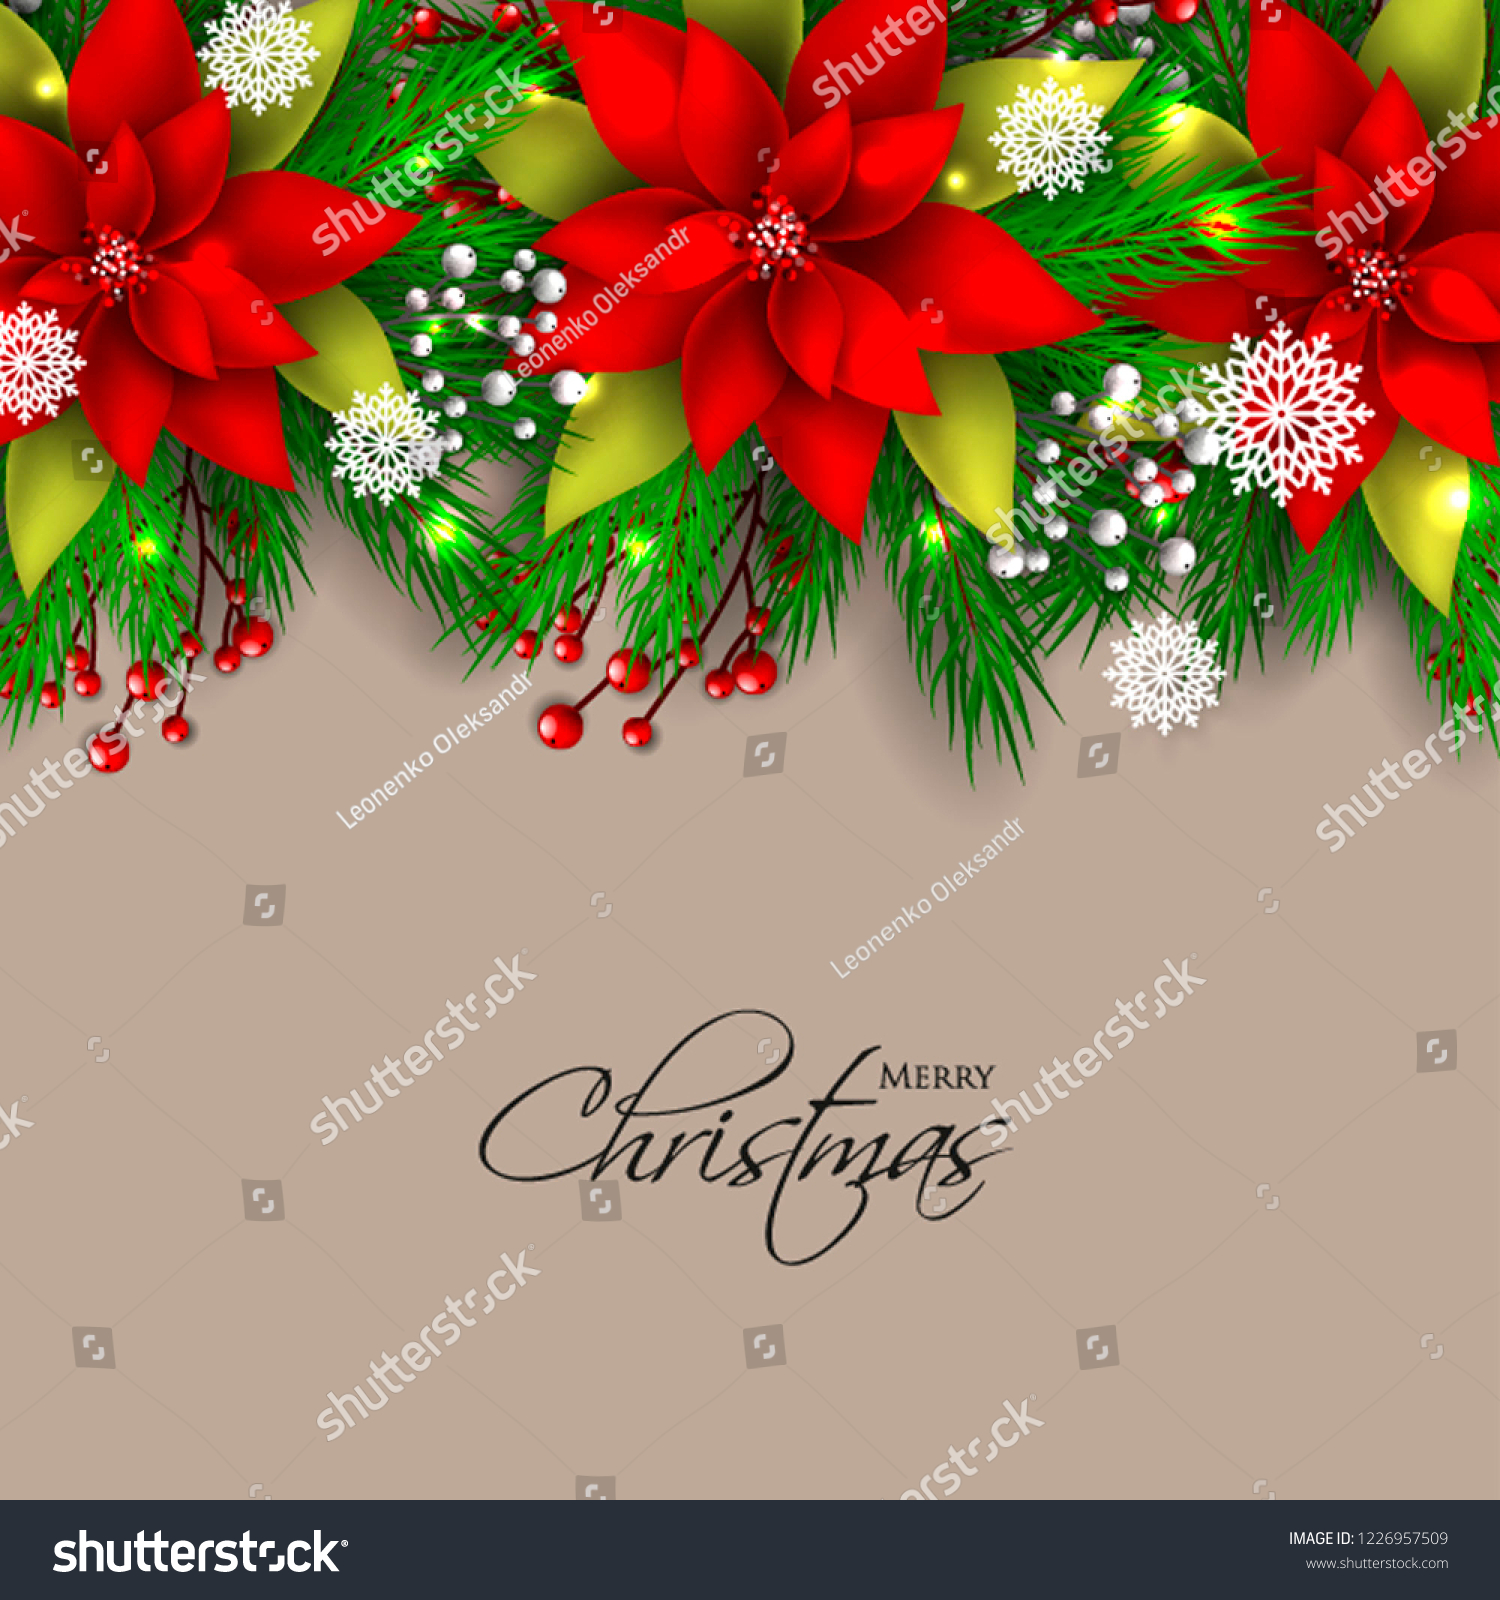 Red Poinsettia Christmas Party Invitation Vector Stock Vector (Royalty  Free) 1226957509